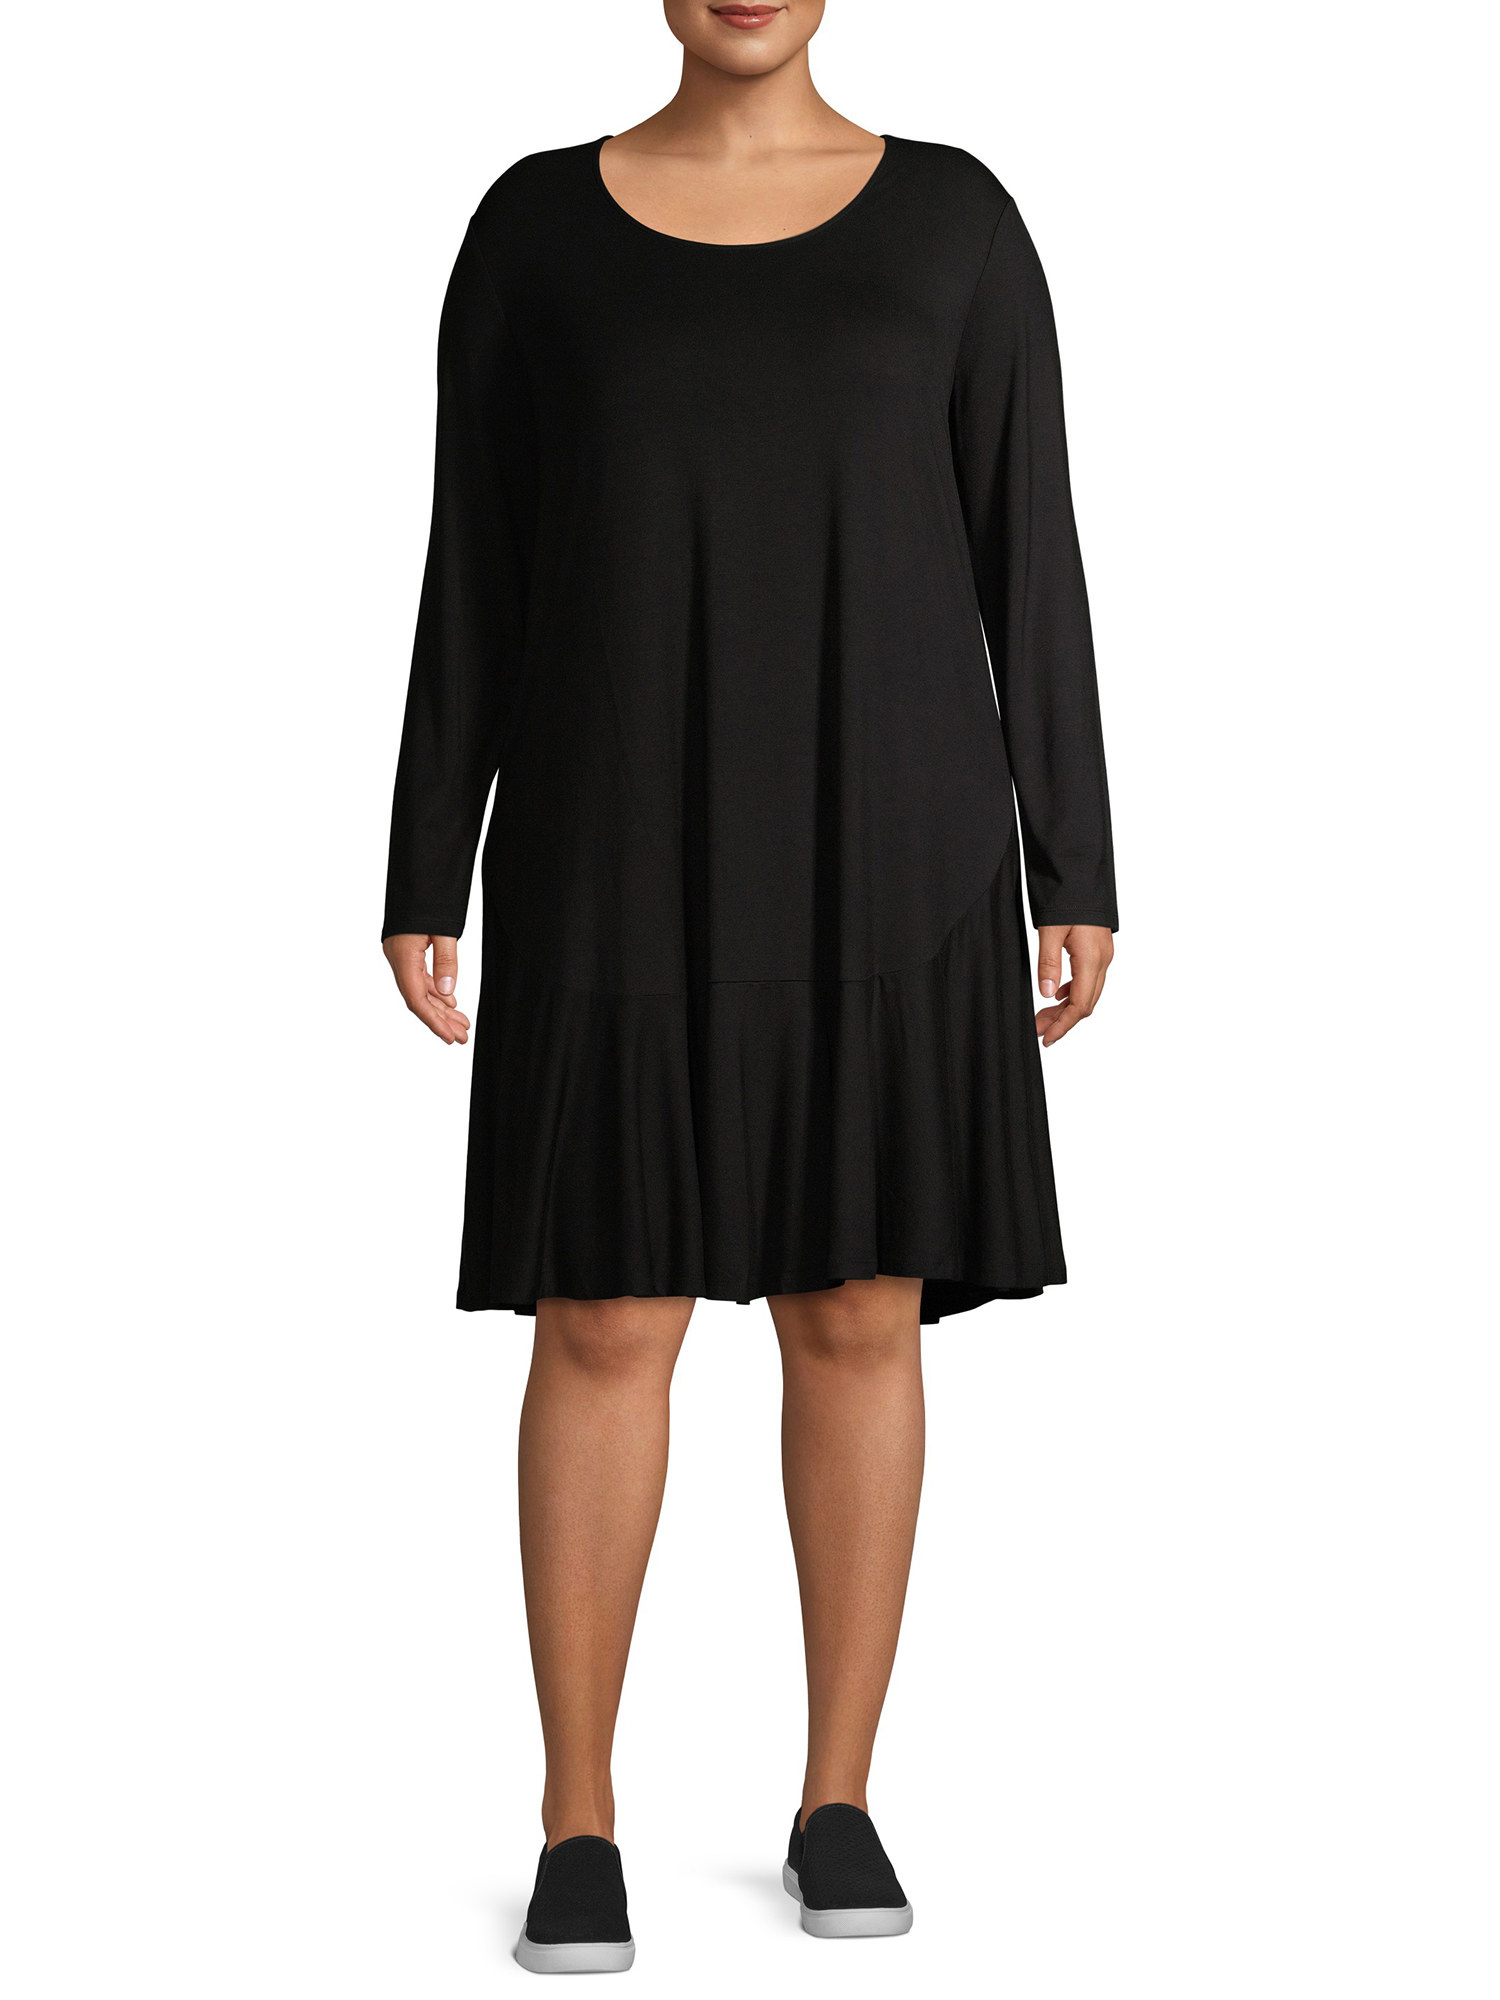 The knee-length, long-sleeve black dress